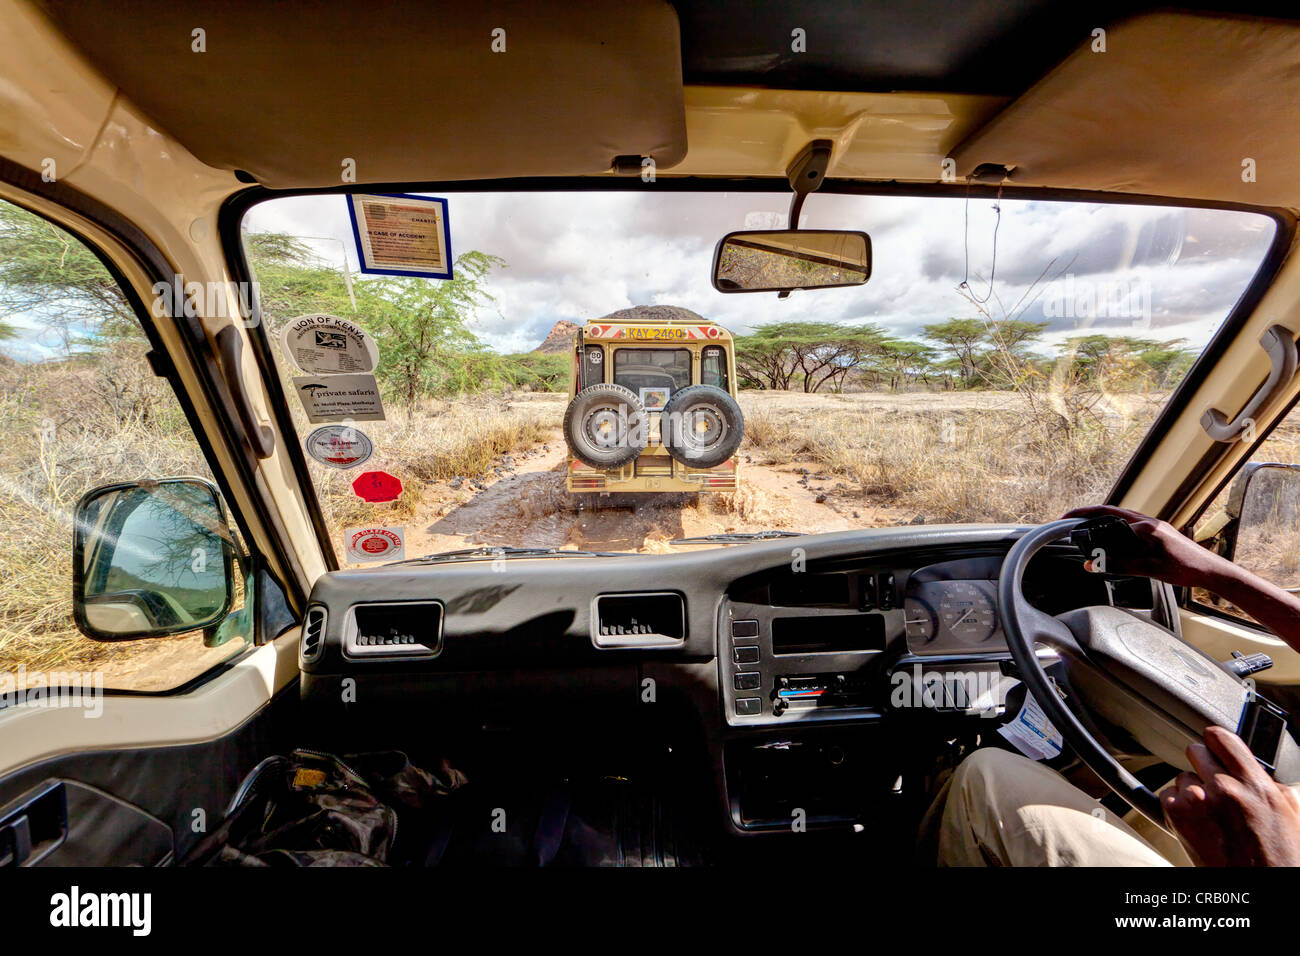 À la suite d'un bus Safari Landrover sur des pistes de terre humide dans la réserve nationale de Samburu, Photo Stock